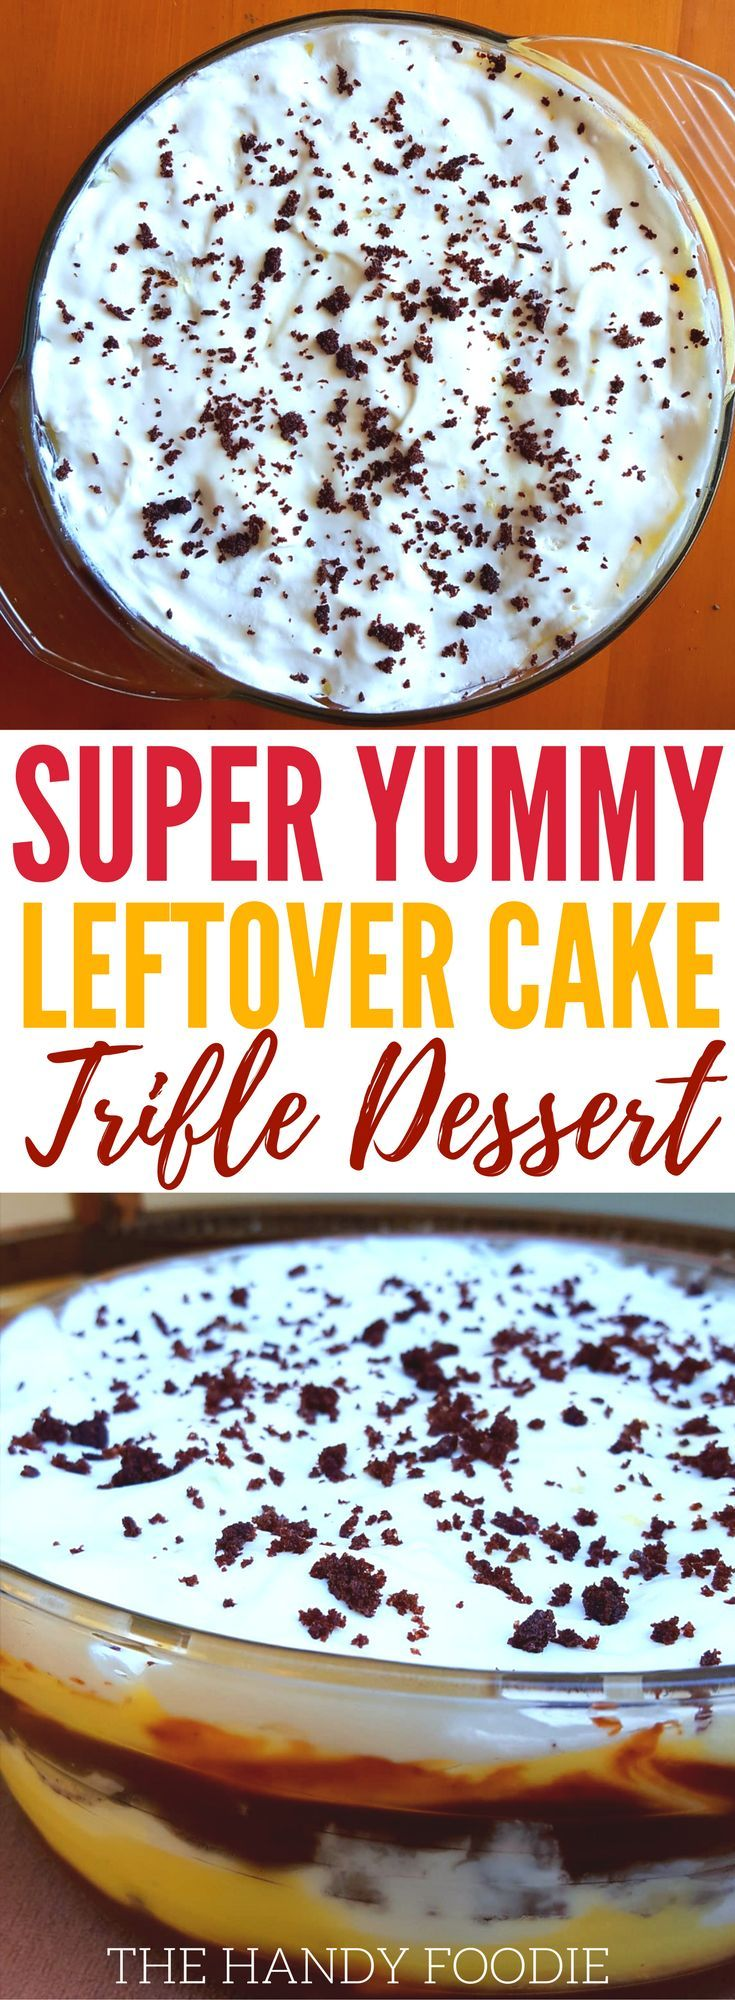 Wow. this chocolate vanilla trifle dessert leftover is so delicious. This is one of those no bake desserts for those chocolate cake dessert lovers. Now, you can make this every holiday season. You can make this as Thanksgiving dessert, Christmas dessert, etc. Definitely pinning! What to do leftover cake ideas #dessert #chocolate #trifle #sidedish